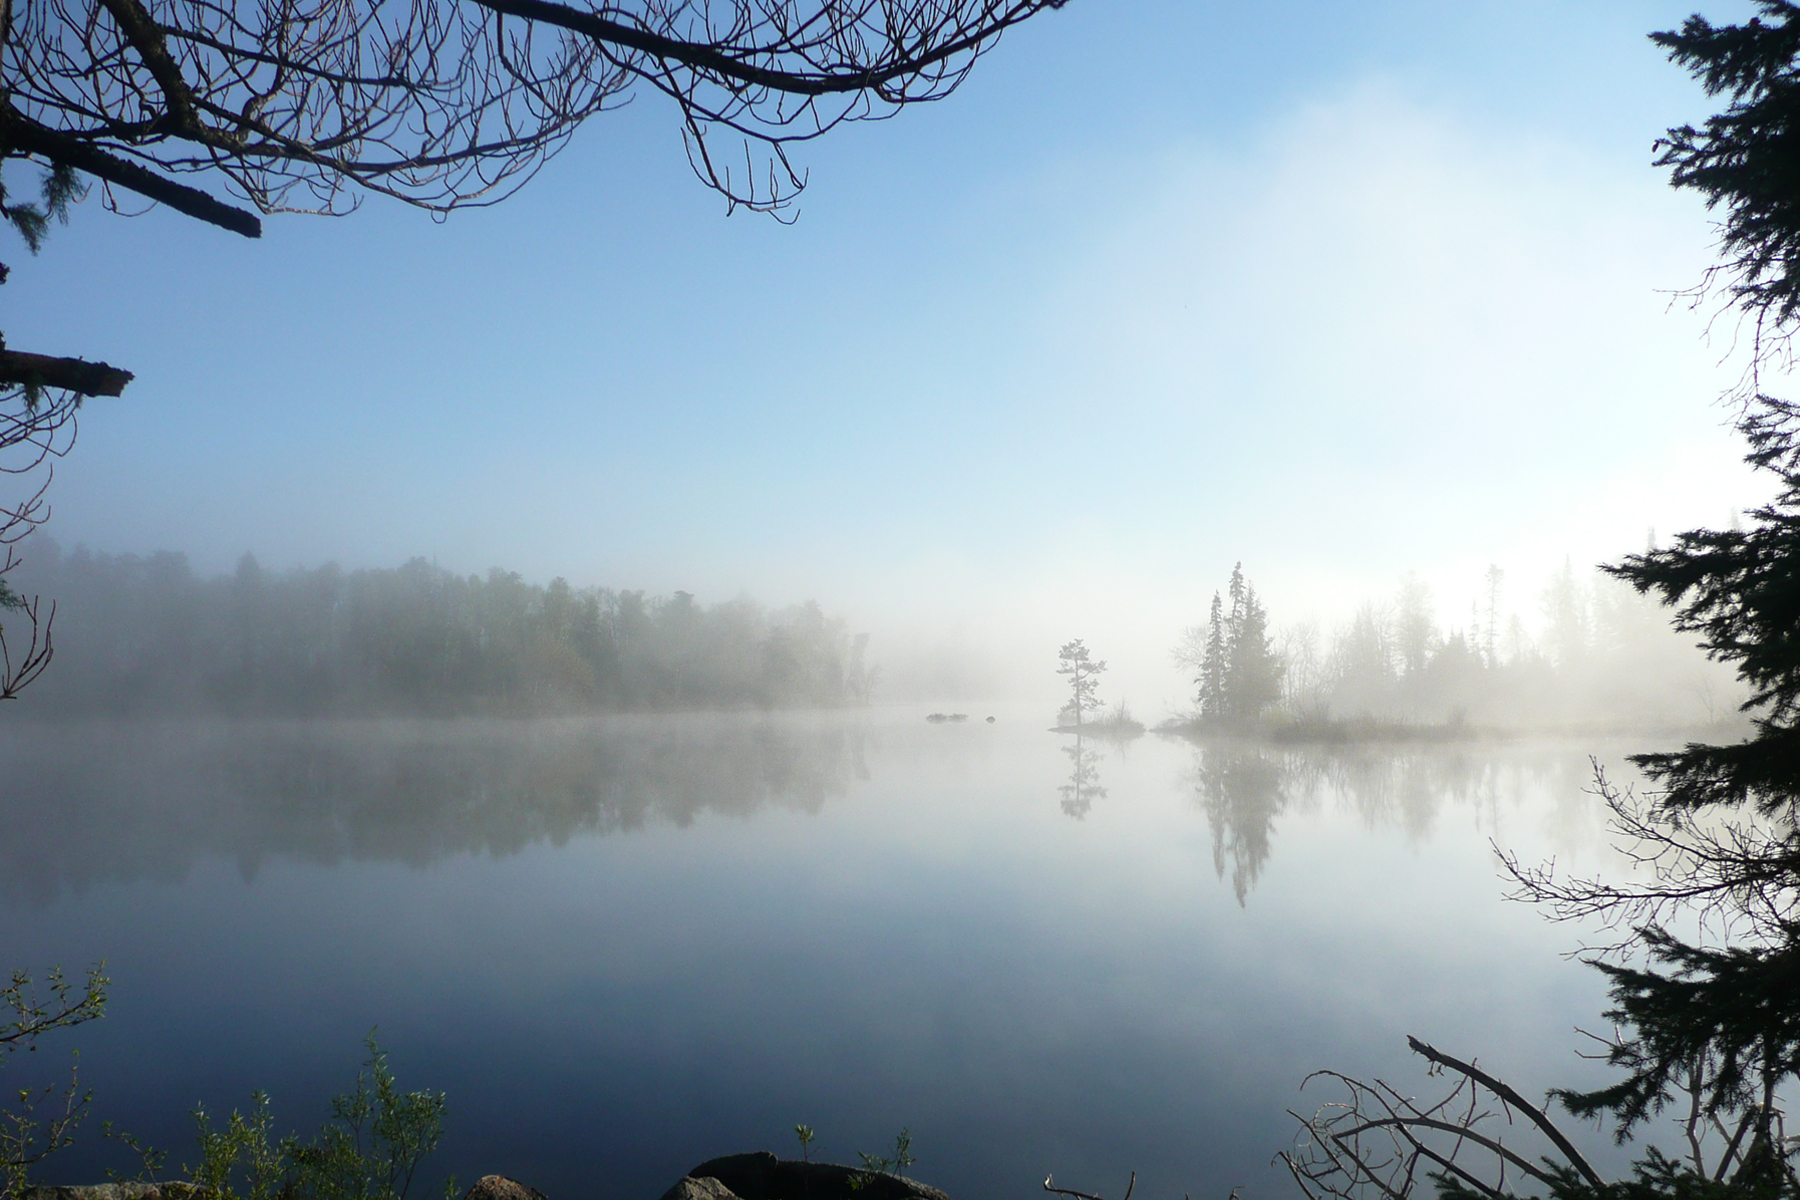 Boundary Waters Canoe Area Wilderness by Steven Conry via Flickr